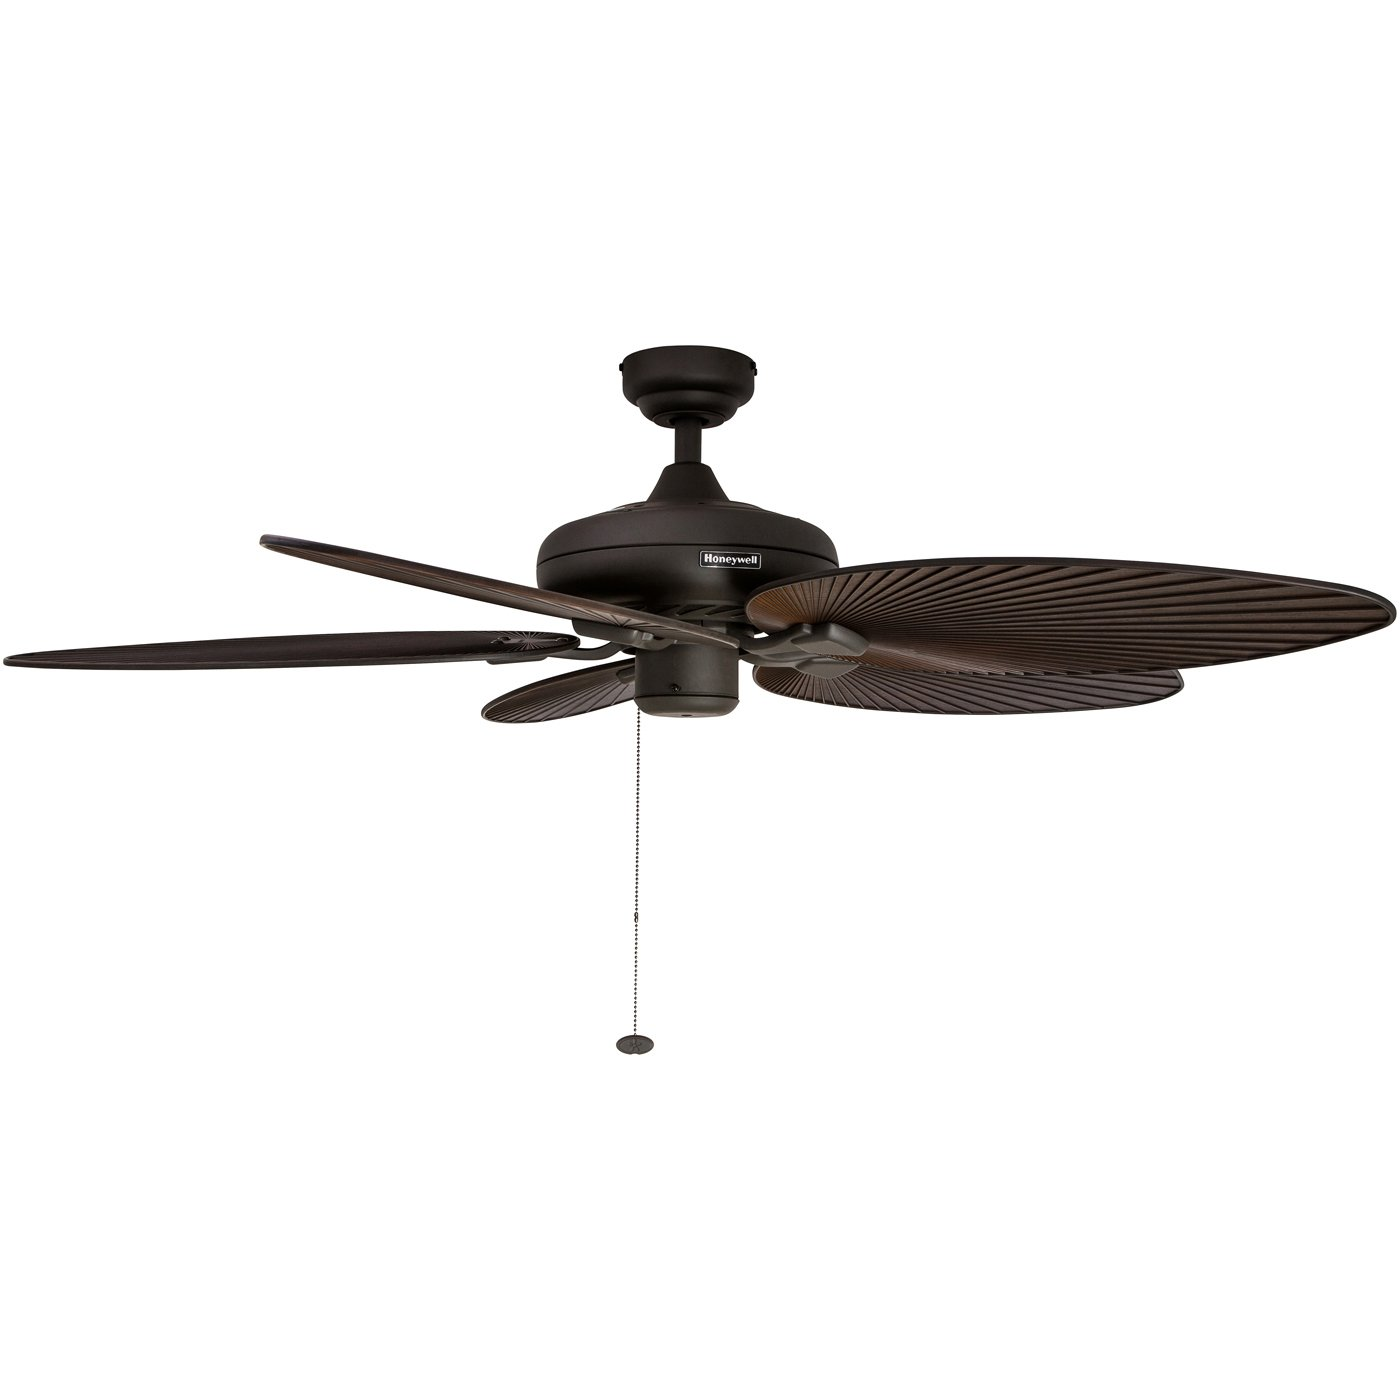 Honeywell Palm Island 52-Inch Tropical Ceiling Fan with Sunset Glass Bowl Light Indoor//Outdoor Five Palm Leaf Blades Bronze